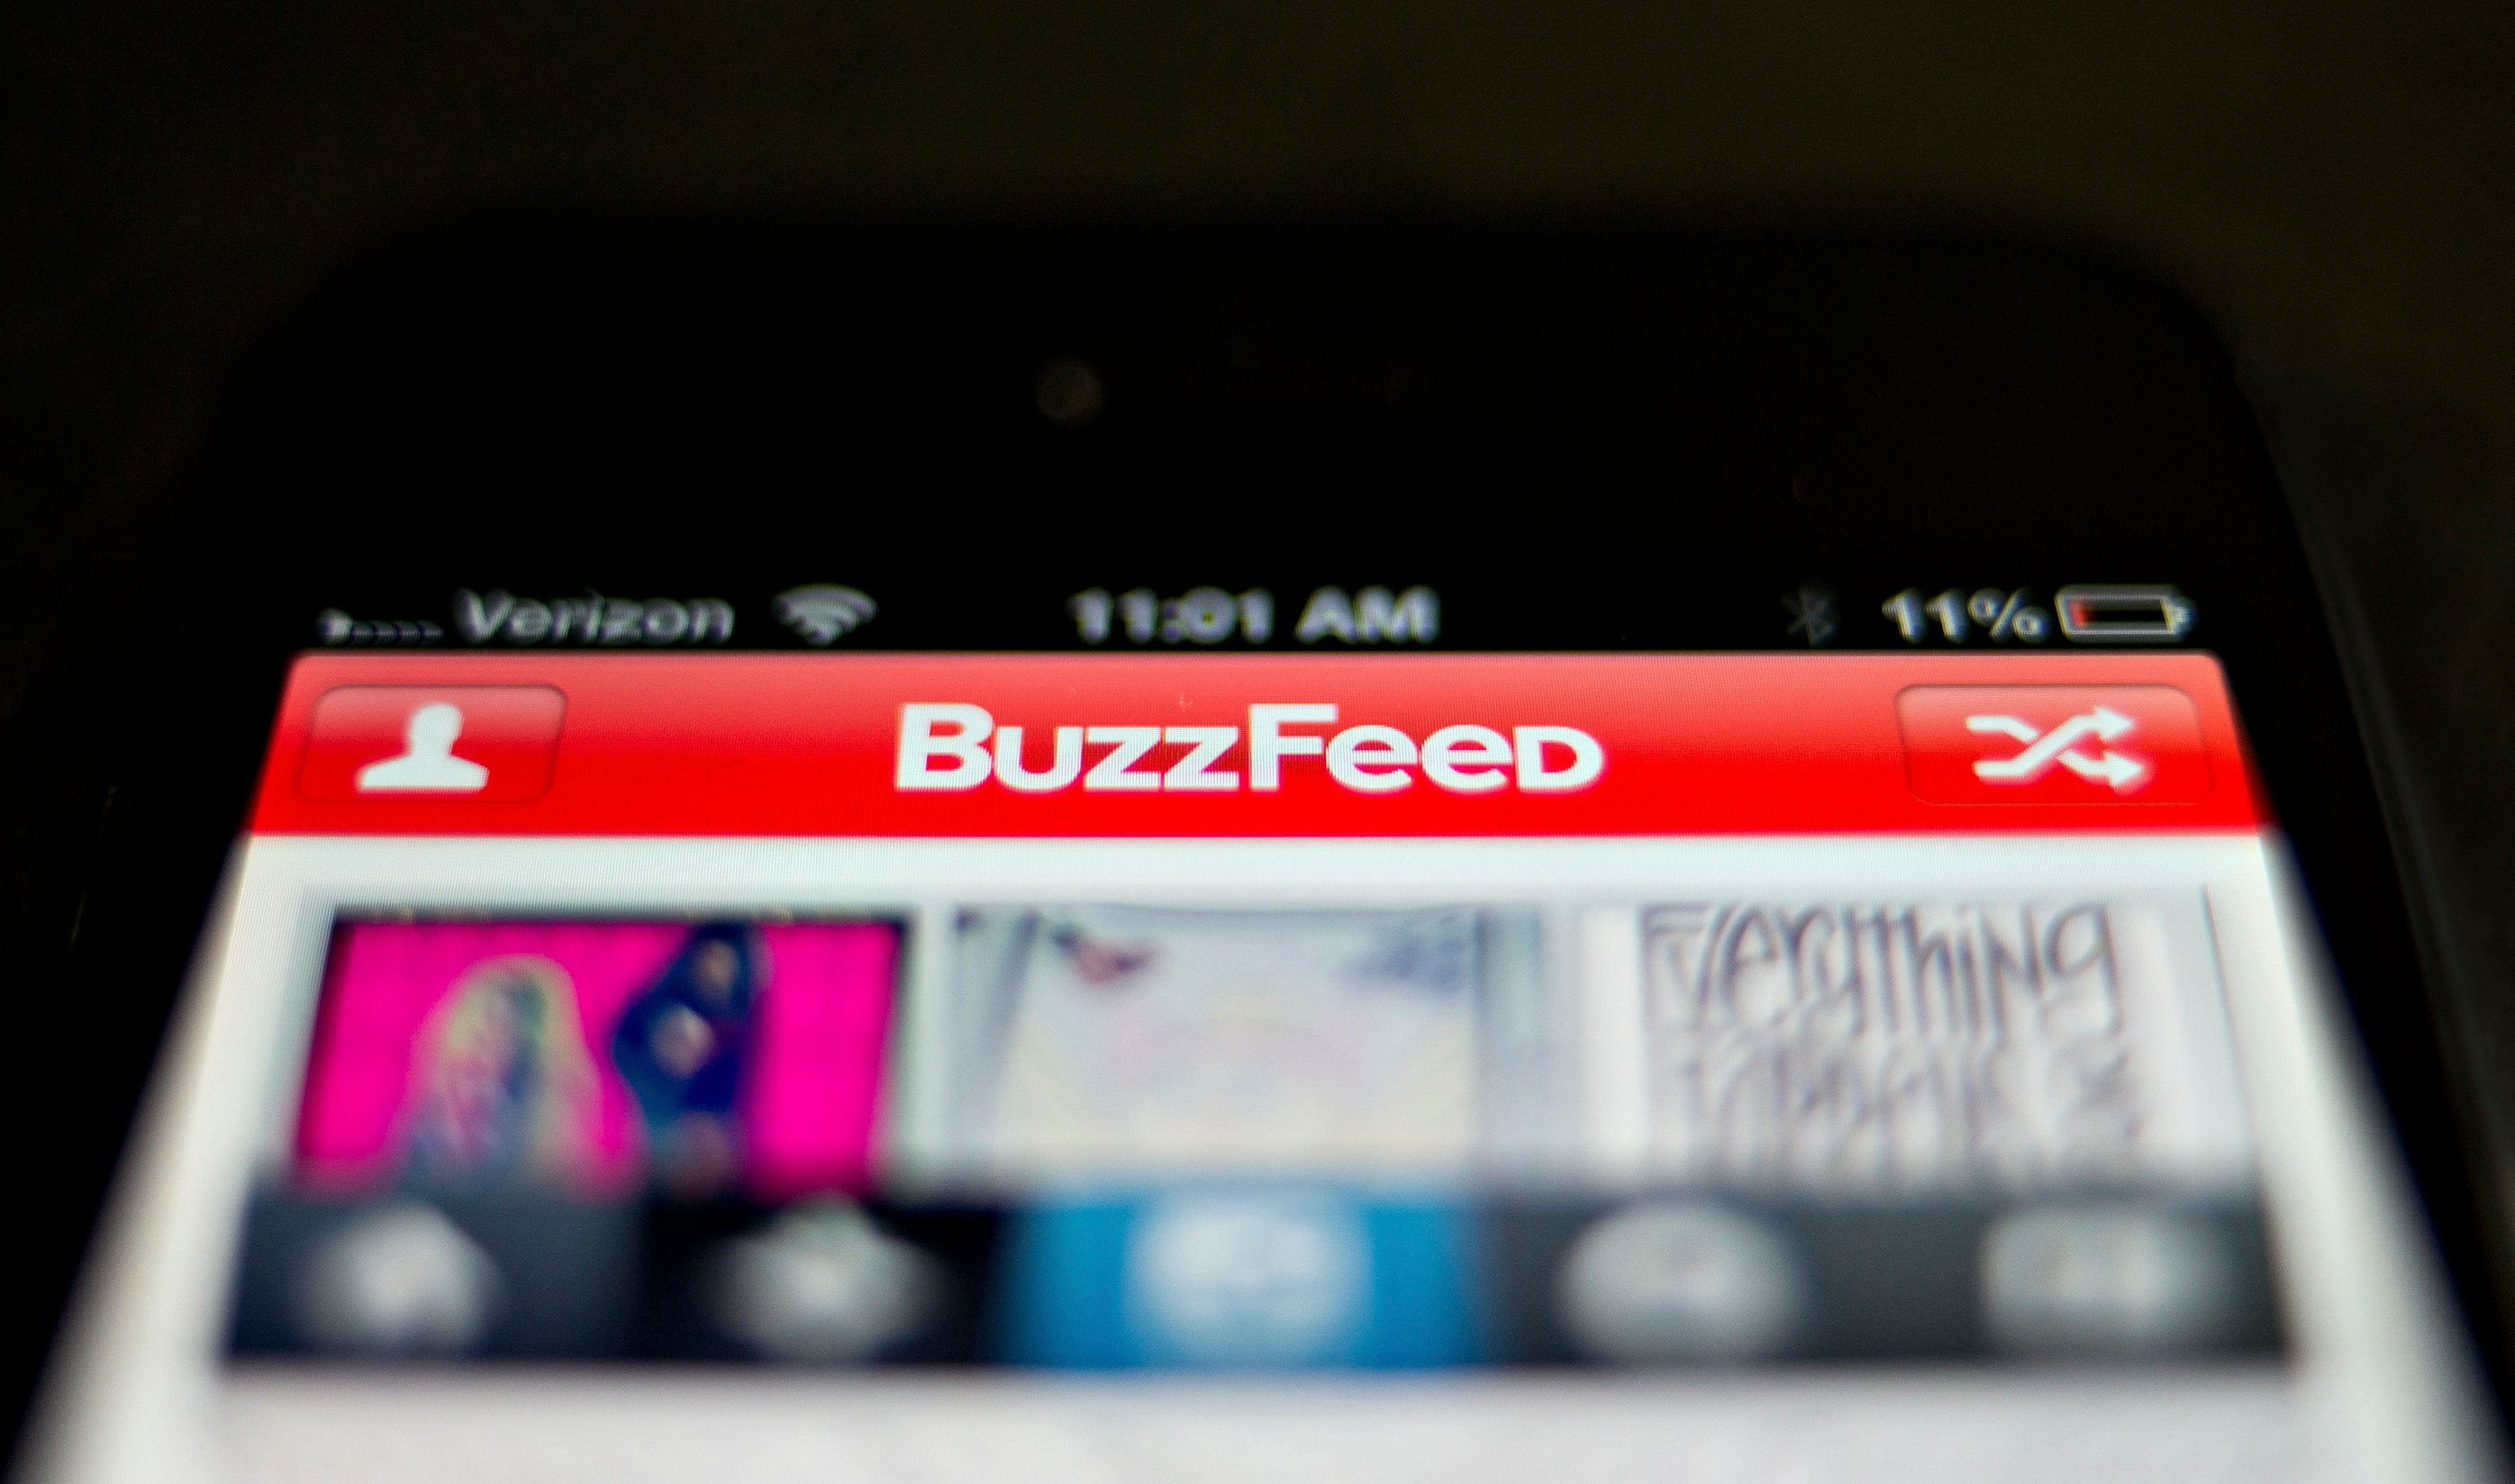 The BuzzFeed app is displayed on an Apple Inc. iPhone 5 in Tiskilwa, Illinois, U.S., on Thursday, May 30, 2013. New York Times Co., looking to imitate the business models used by startups such as BuzzFeed Inc., is considering letting advertisers sponsor more stories on its website, two people with knowledge of the situation said. Photographer: Daniel Acker/Bloomberg via Getty Images